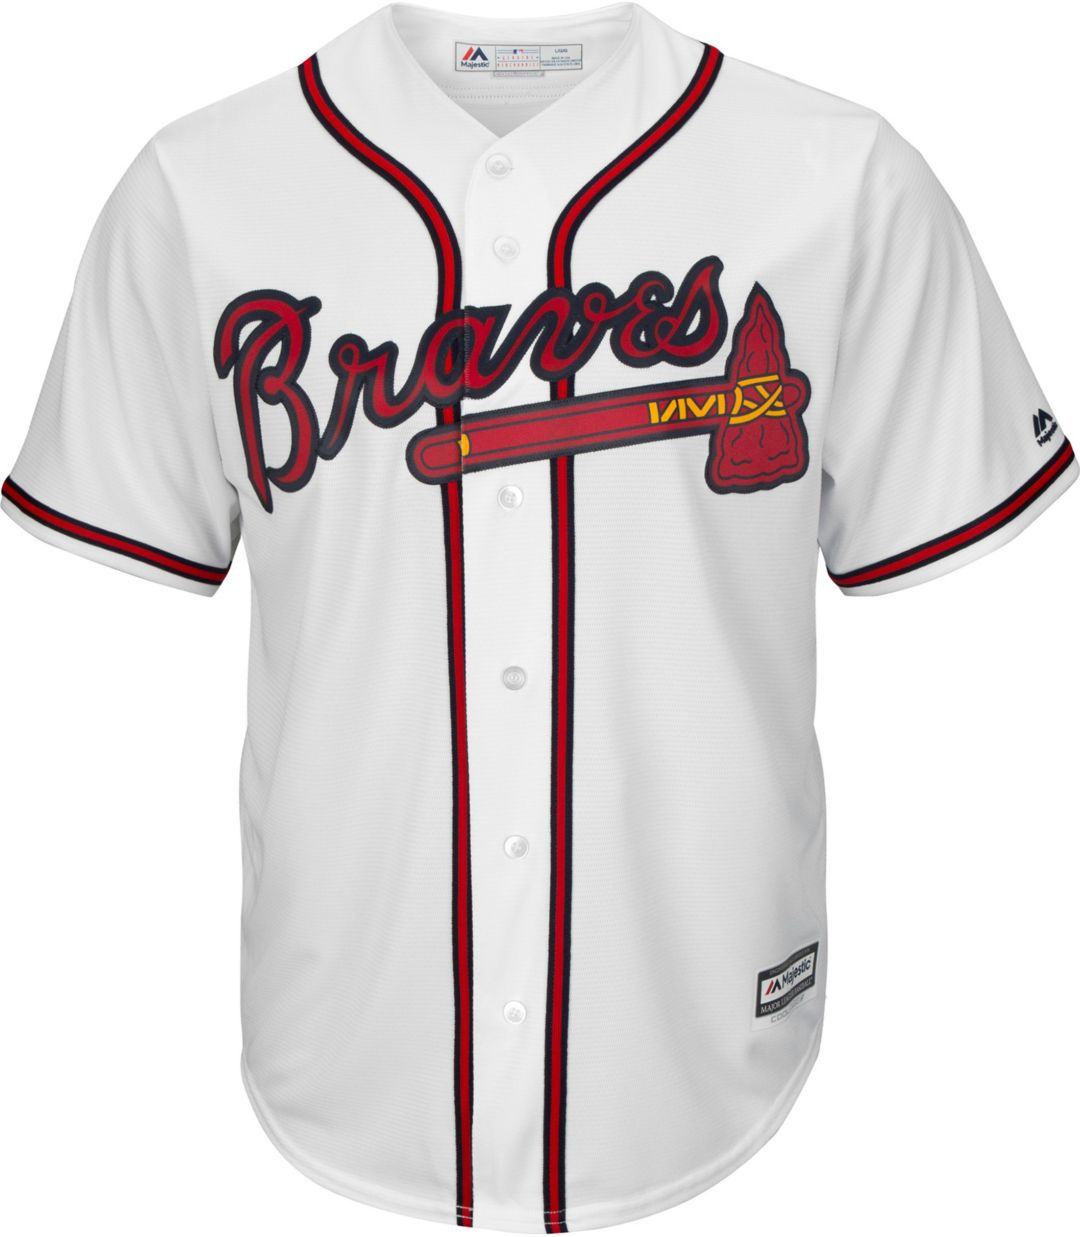 new style 4ec61 de274 Majestic Men's Replica Atlanta Braves Dansby Swanson #7 Cool Base Home  White Jersey